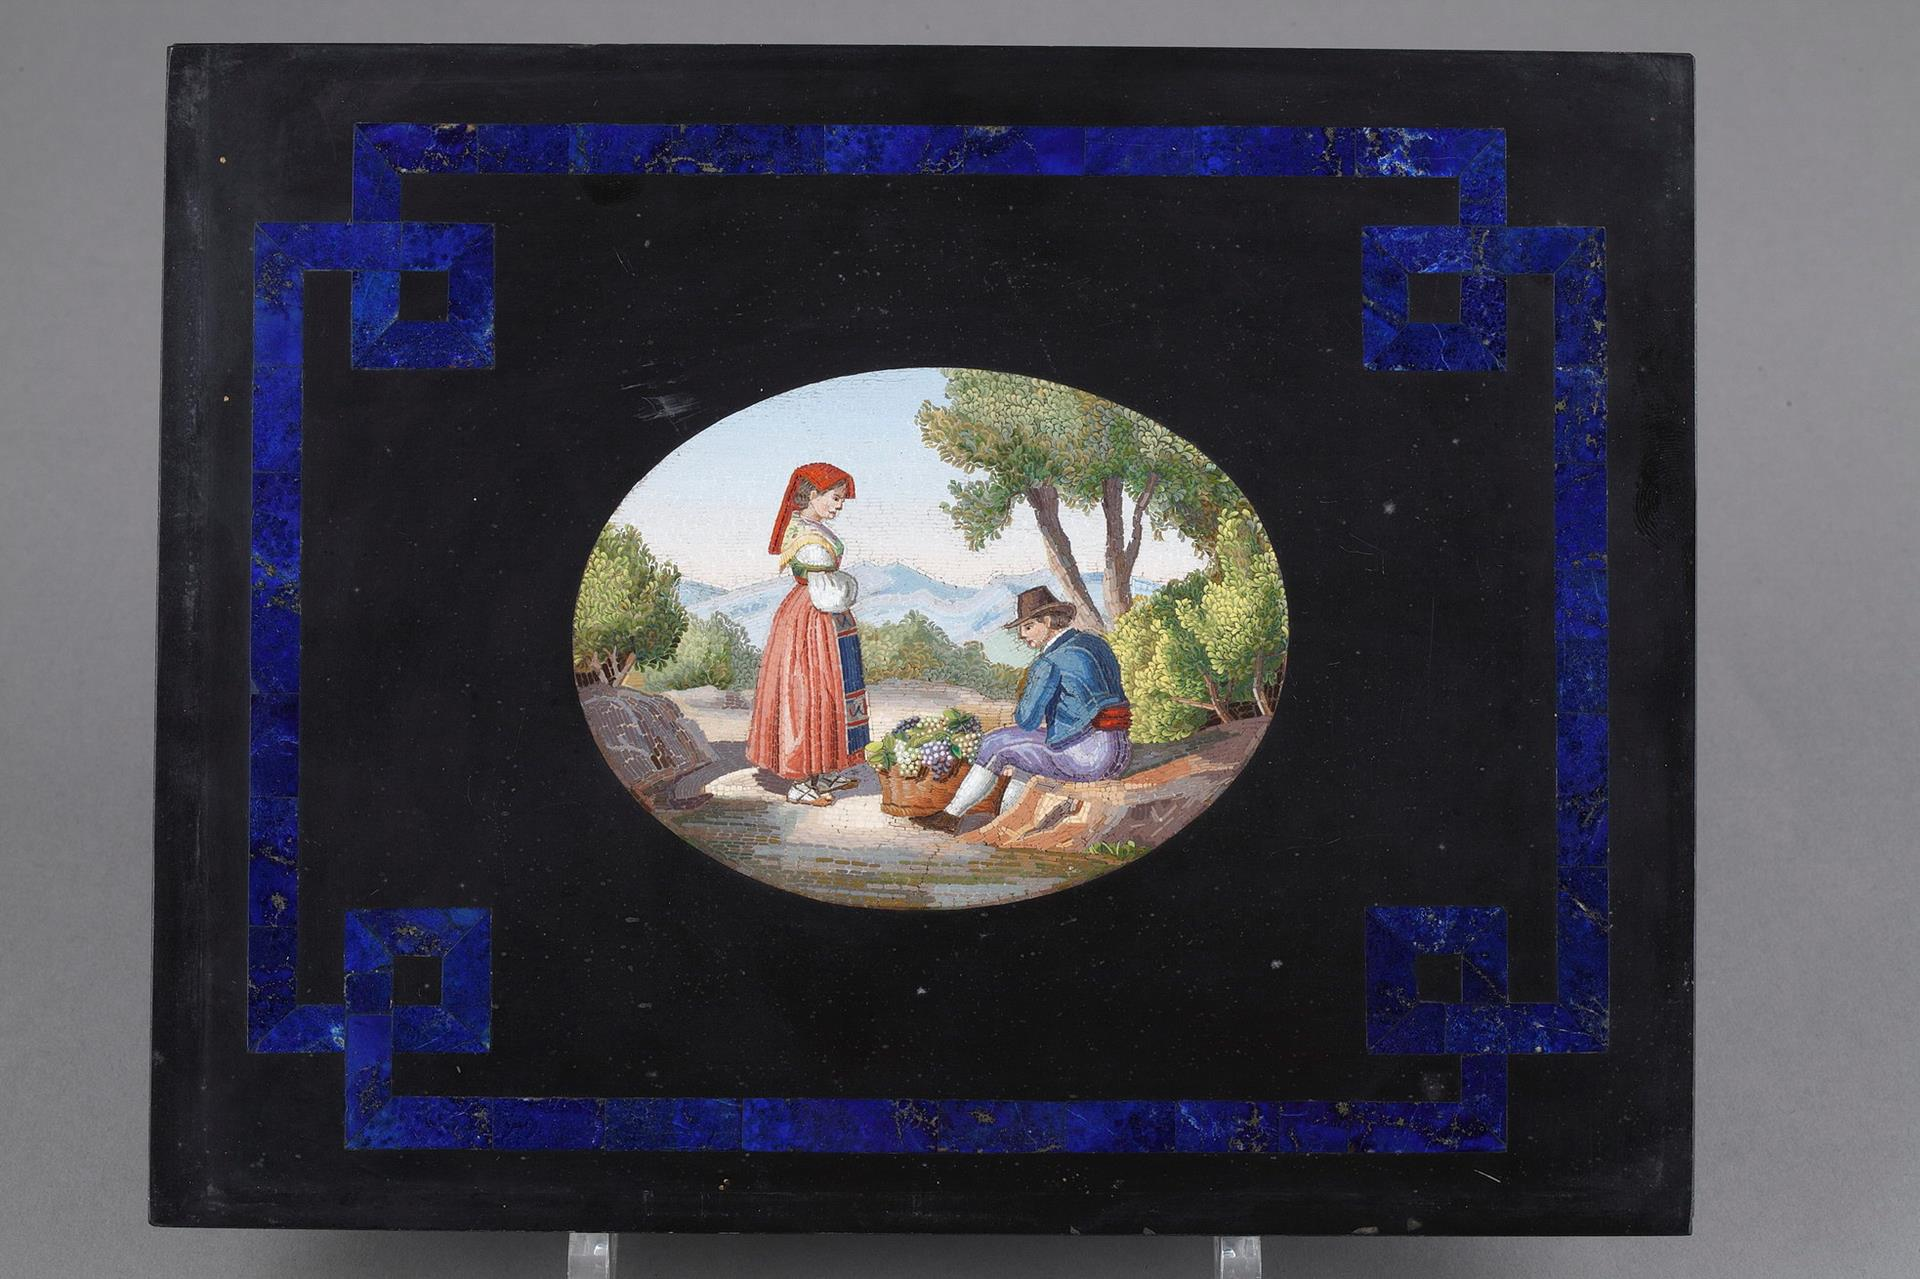 LARGE BLACK MARBLE PLATE, LAPIS LAZULI, AND MICROMOSAIC.<br/> MID-19TH CENTURY WORK